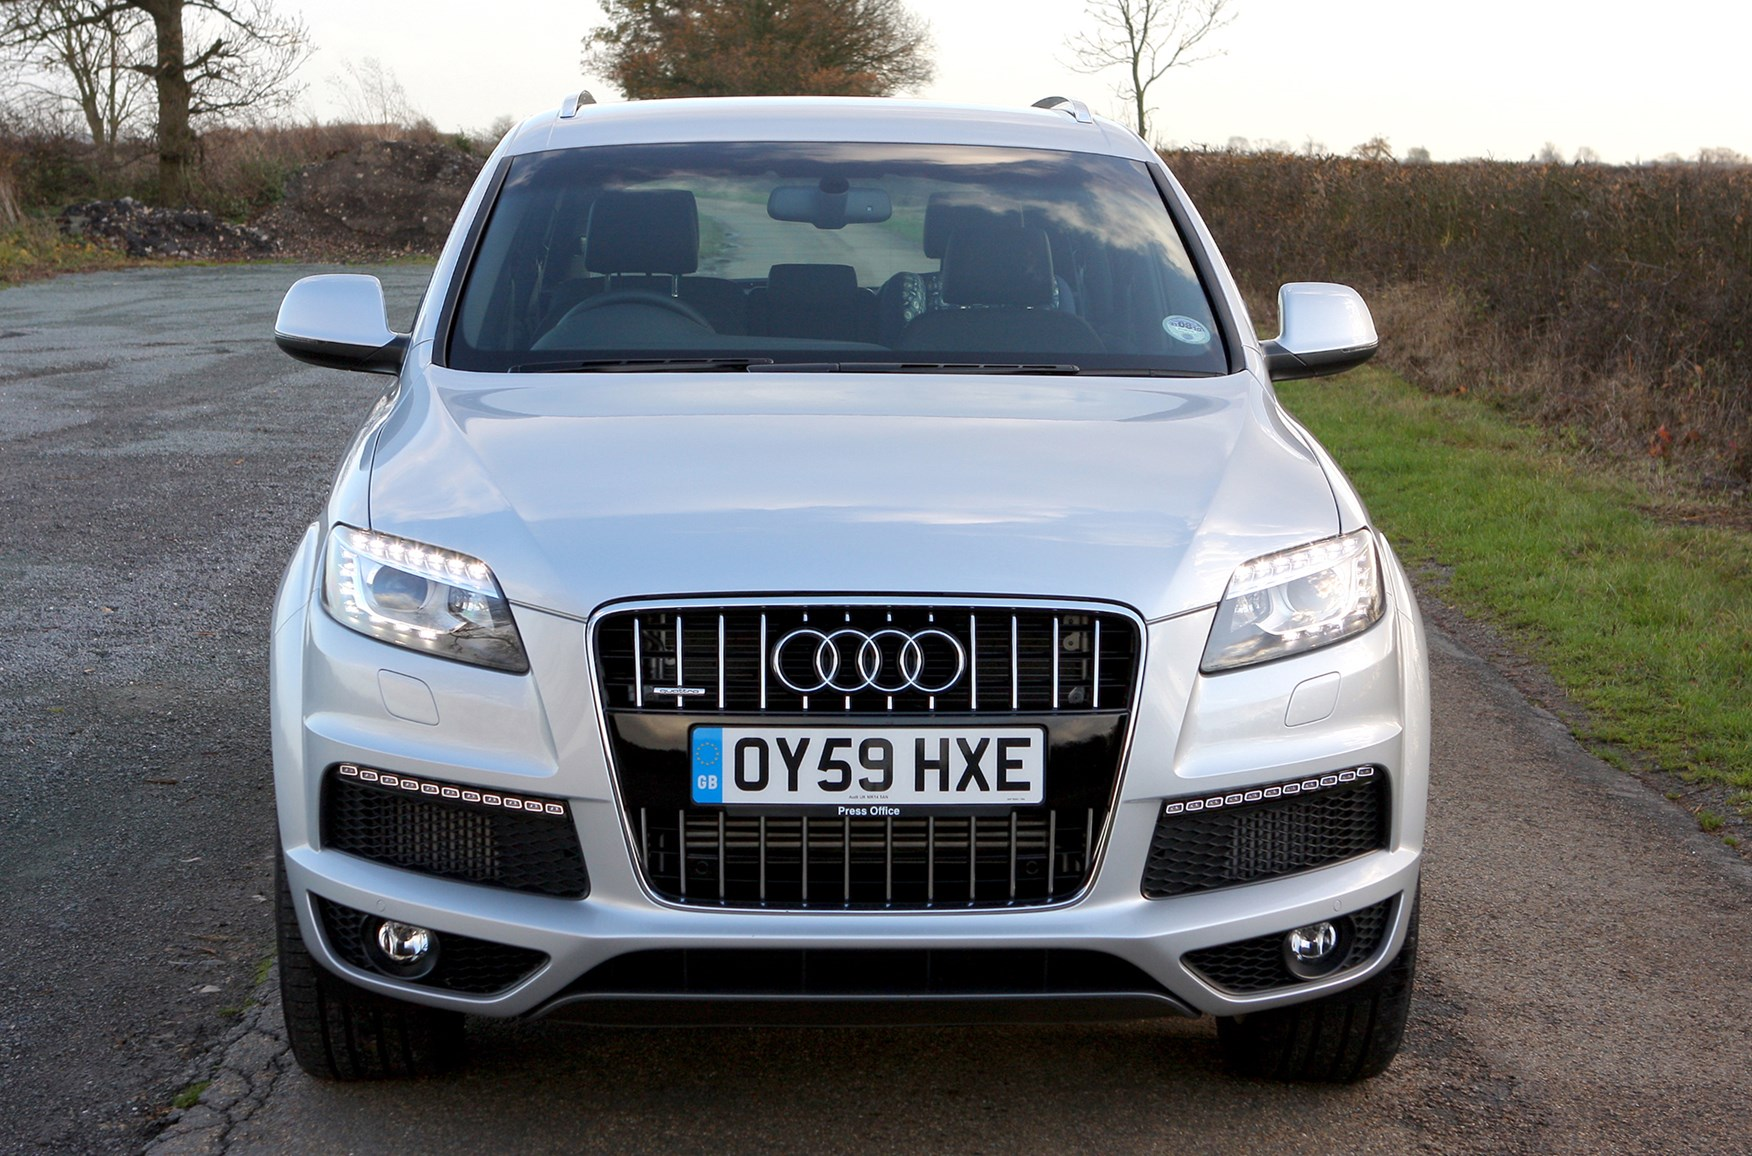 Audi Q7 SUV (2006 - 2014) Photos | Parkers